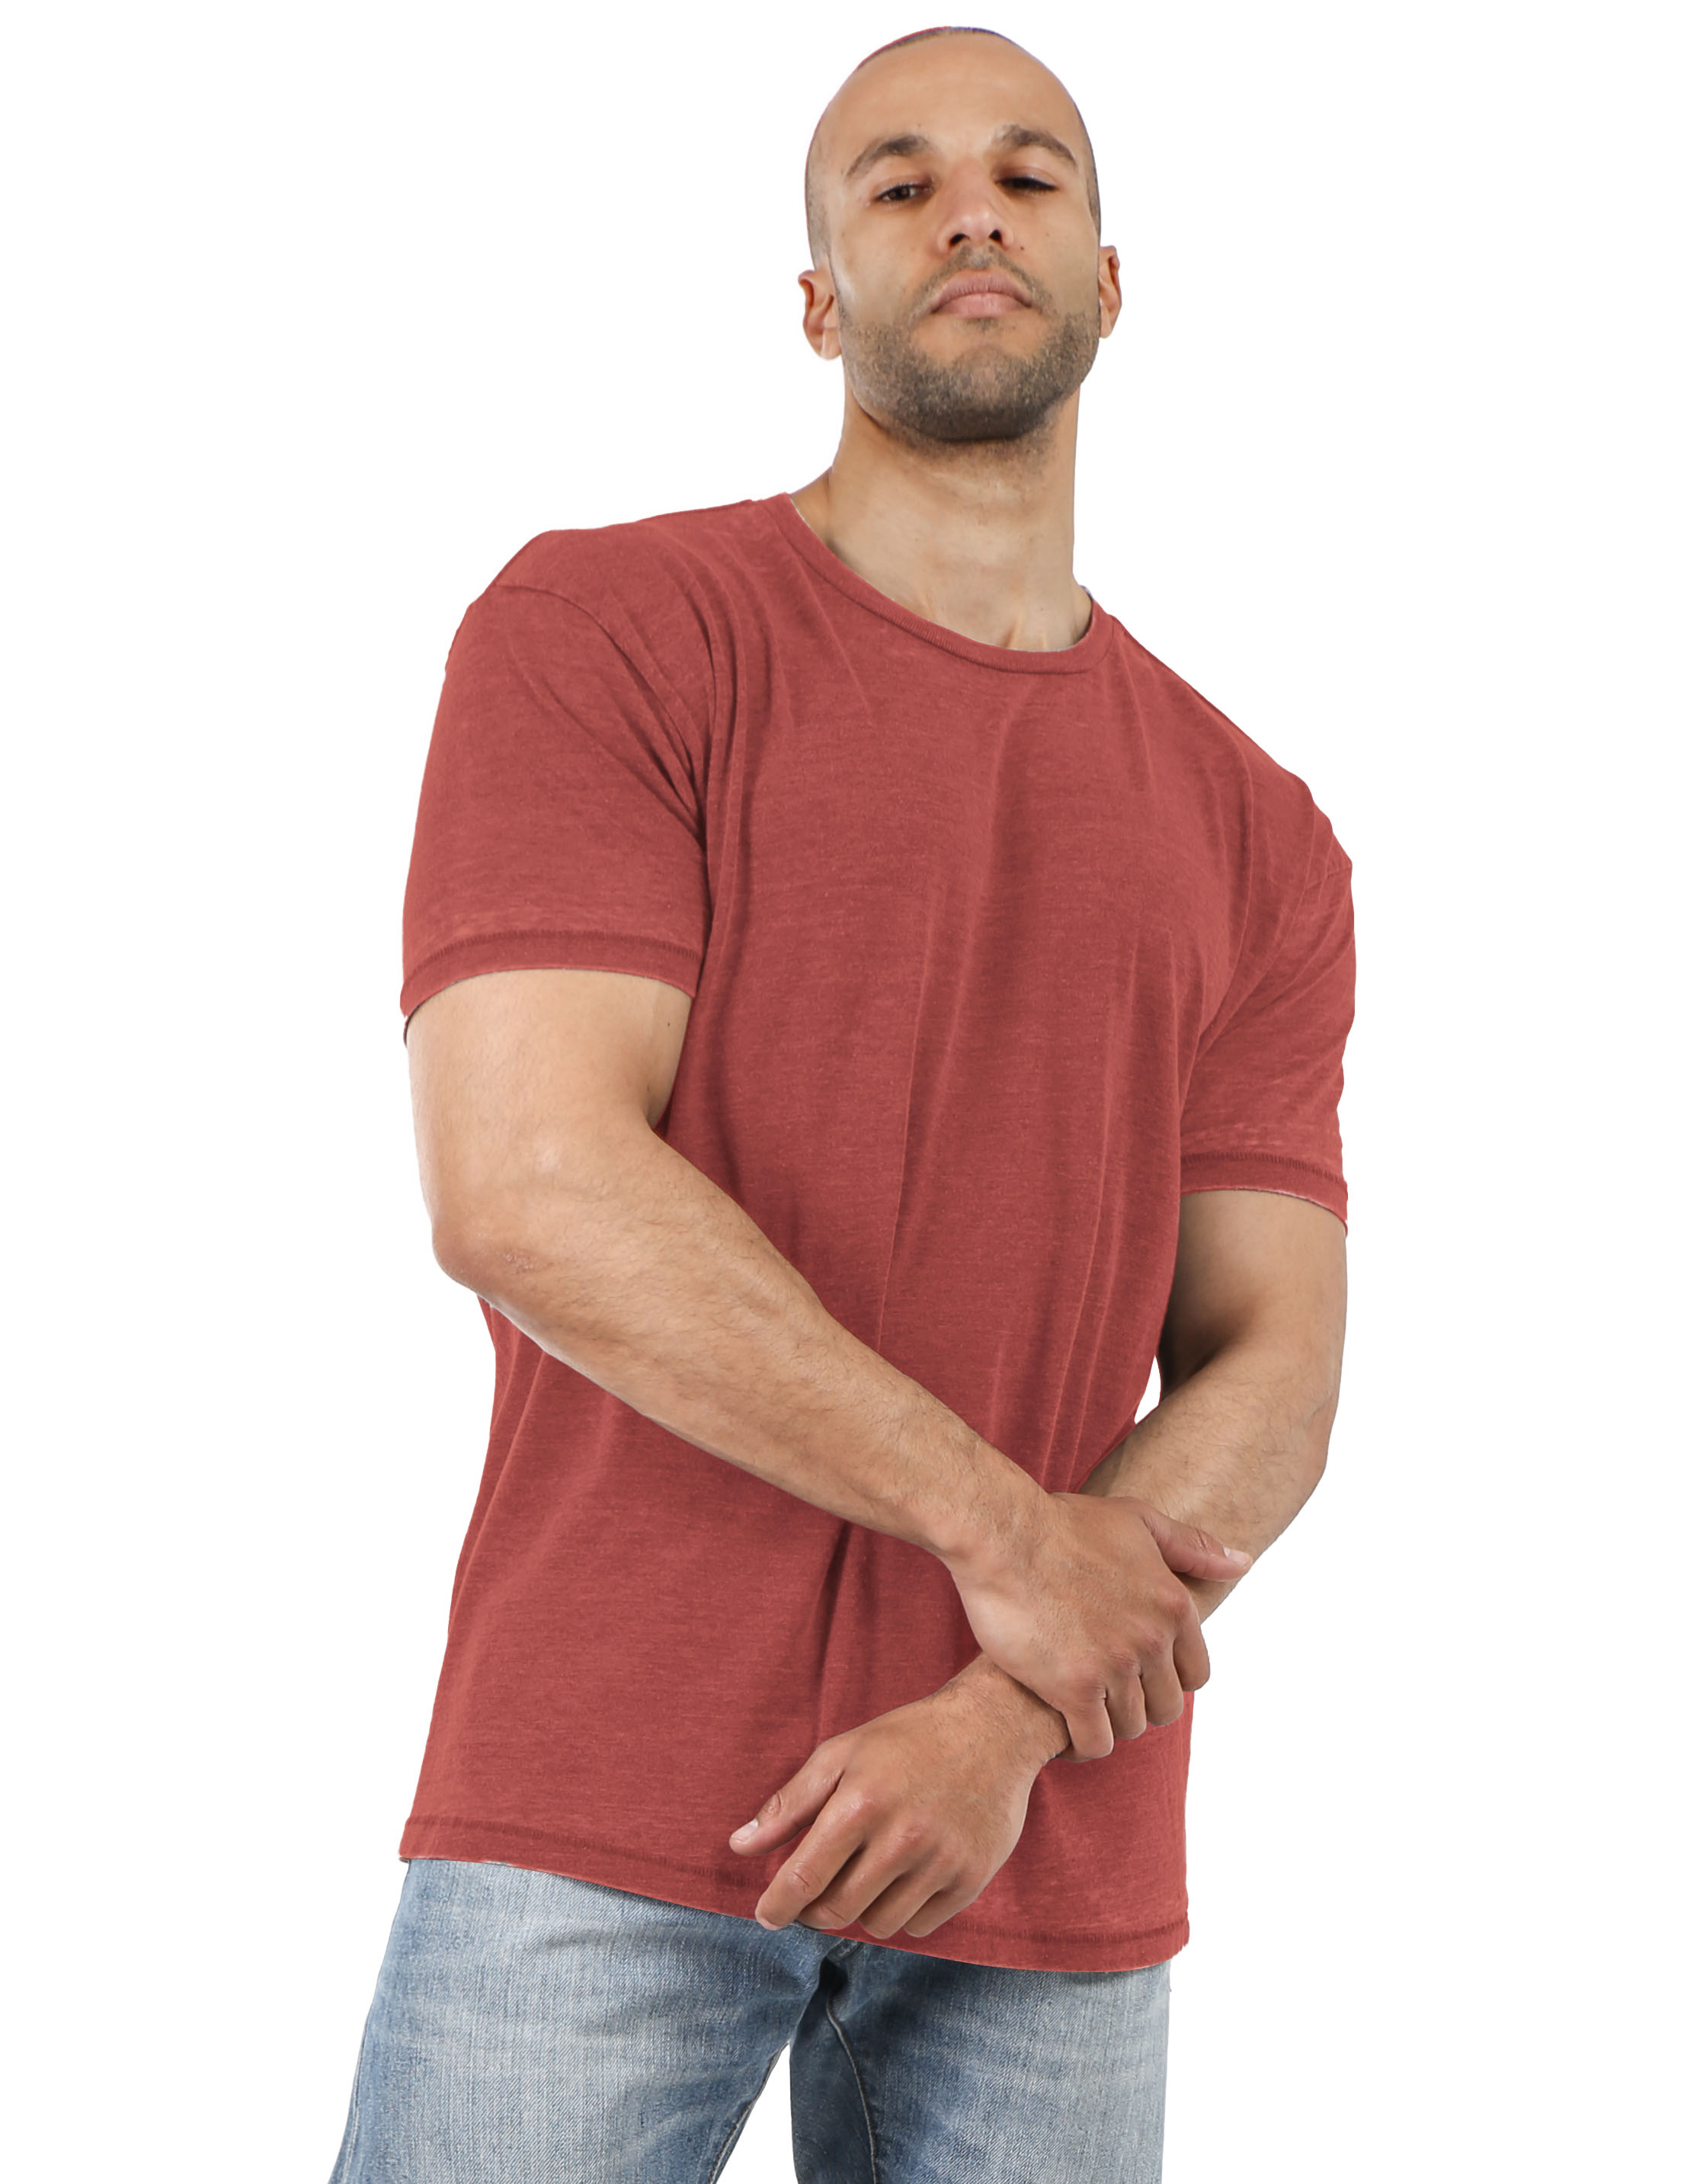 Mens-Vintage-T-Shirts-Washed-Burnout-Fade-Short-Sleeve-Basic-Crew-Neck-Tee thumbnail 8